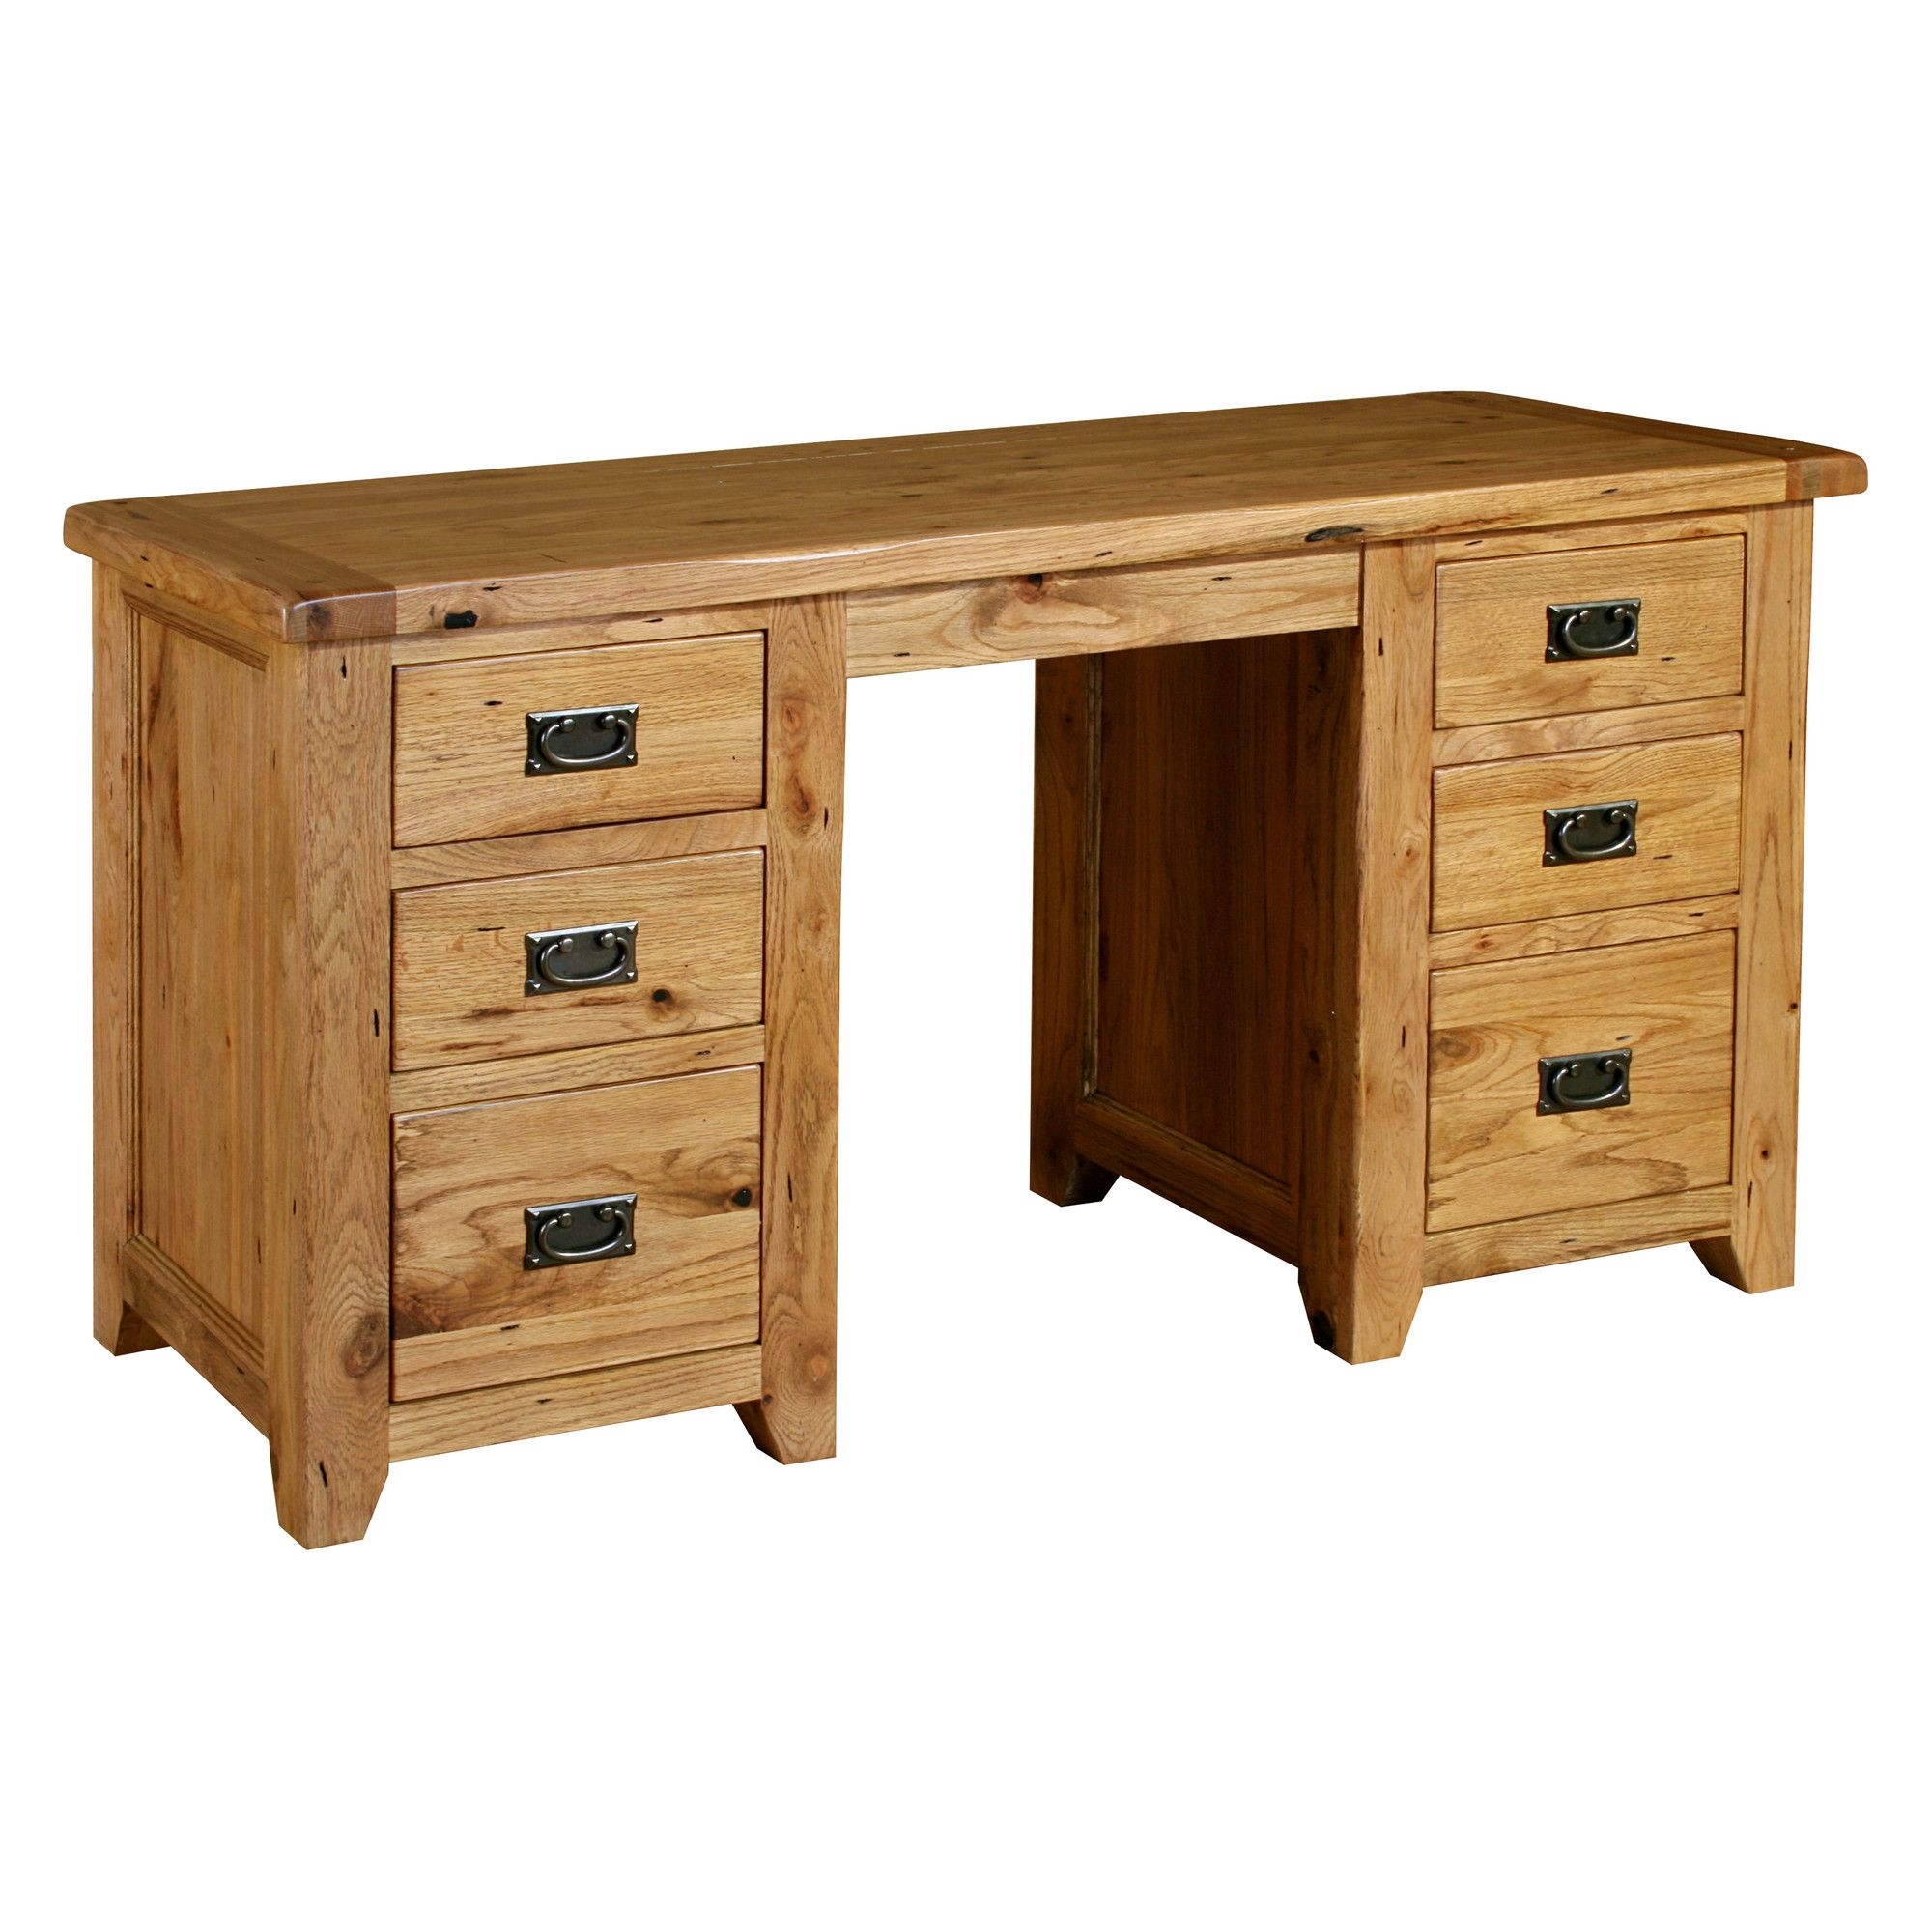 Office Office Furniture Kelburn Furniture Parnell Double Pedestal Desk In Rustic Oak